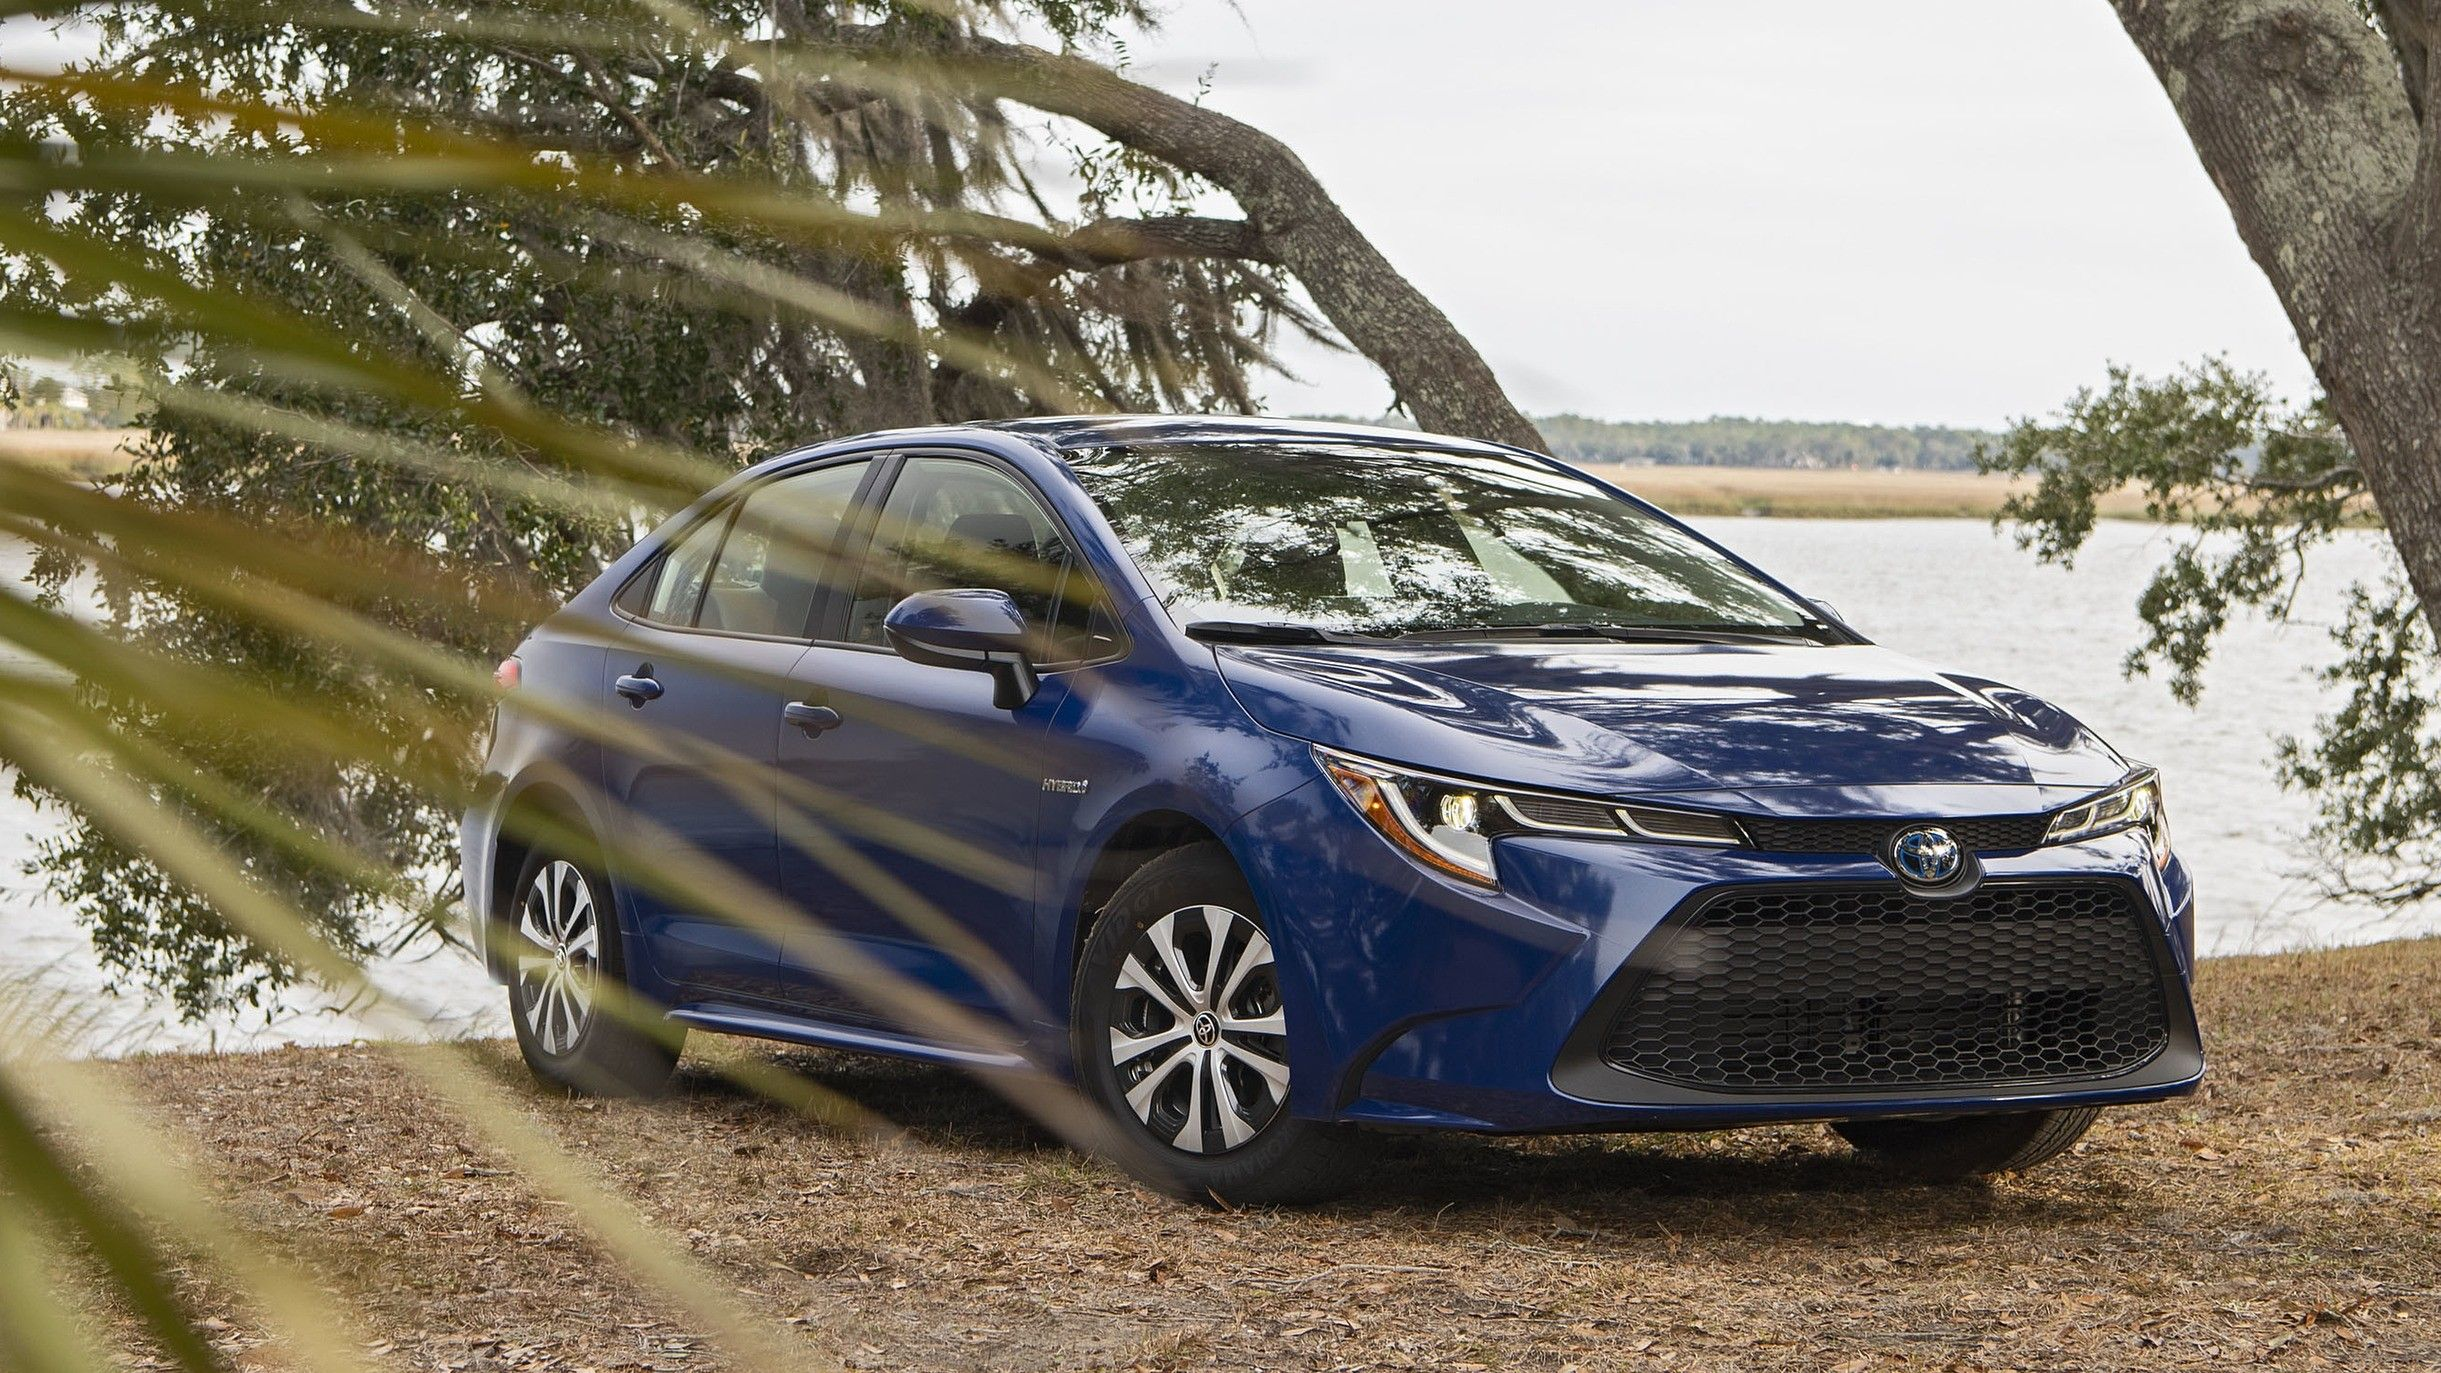 2021 toyota corolla hybrid review - price, range, charging